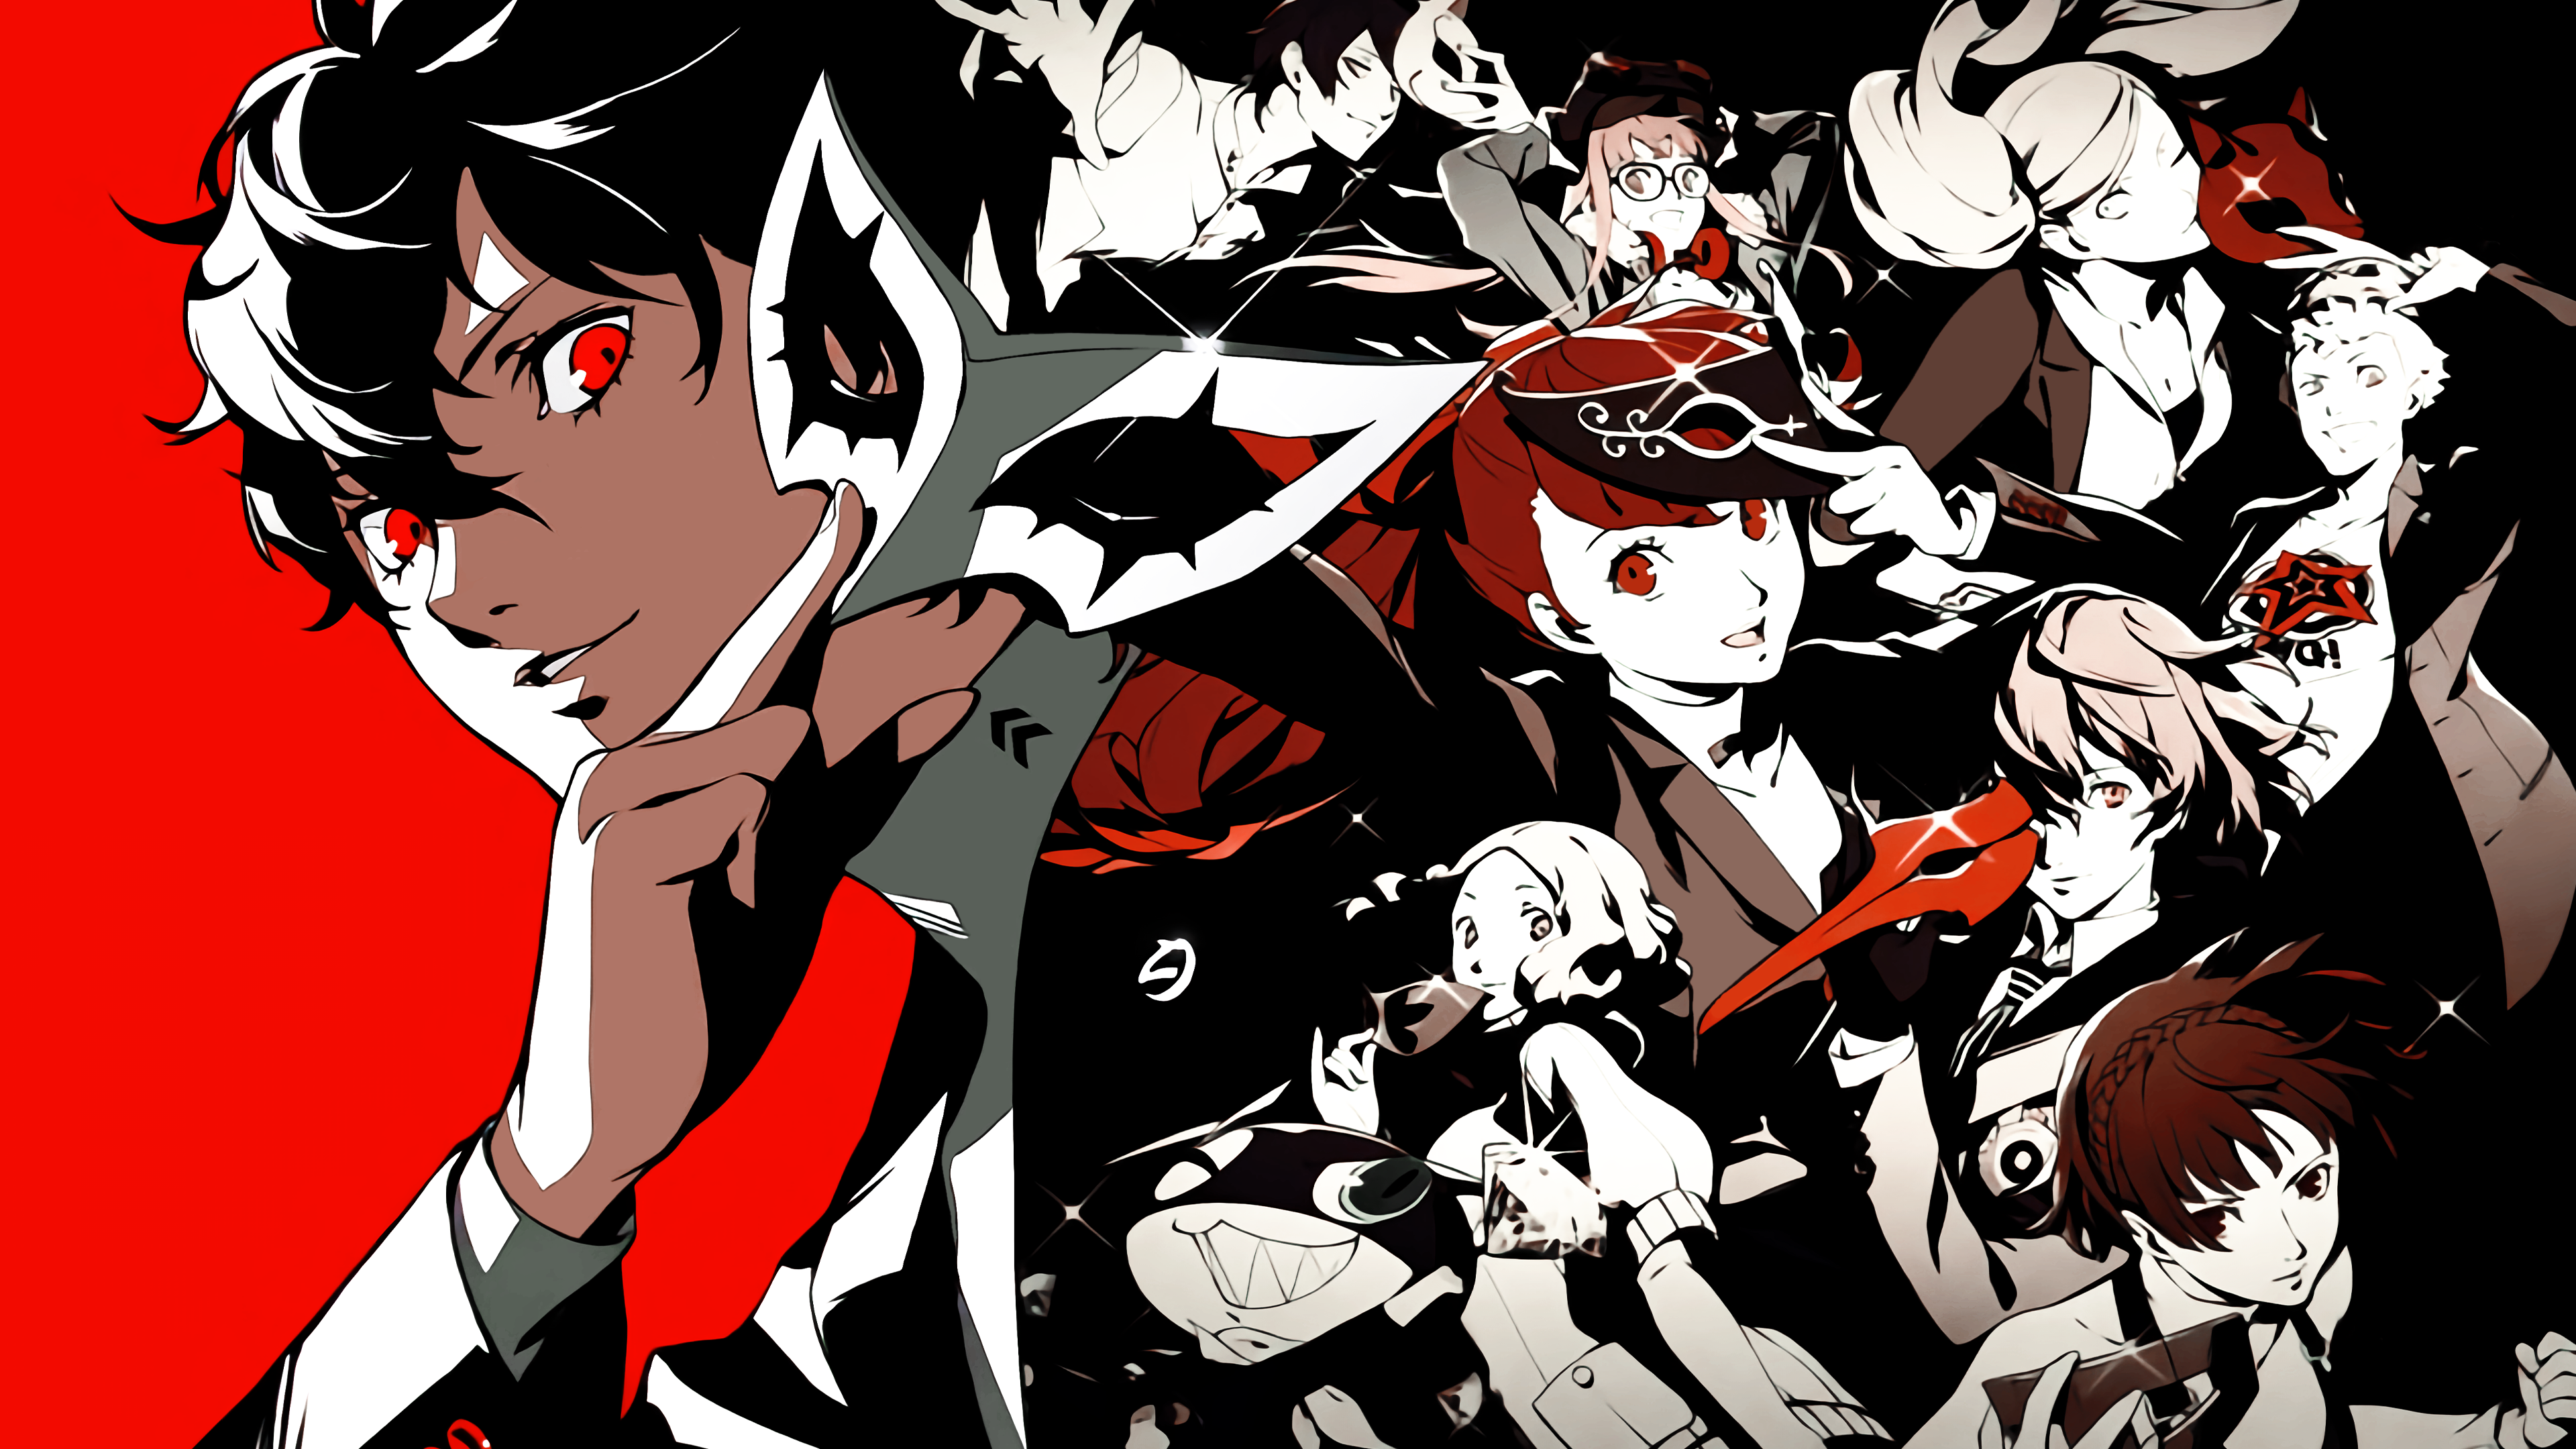 New Persona 5 Royal 4k Artwork Wallpaper P5r Persona5 In 2020 Persona 5 Persona Persona 5 Joker